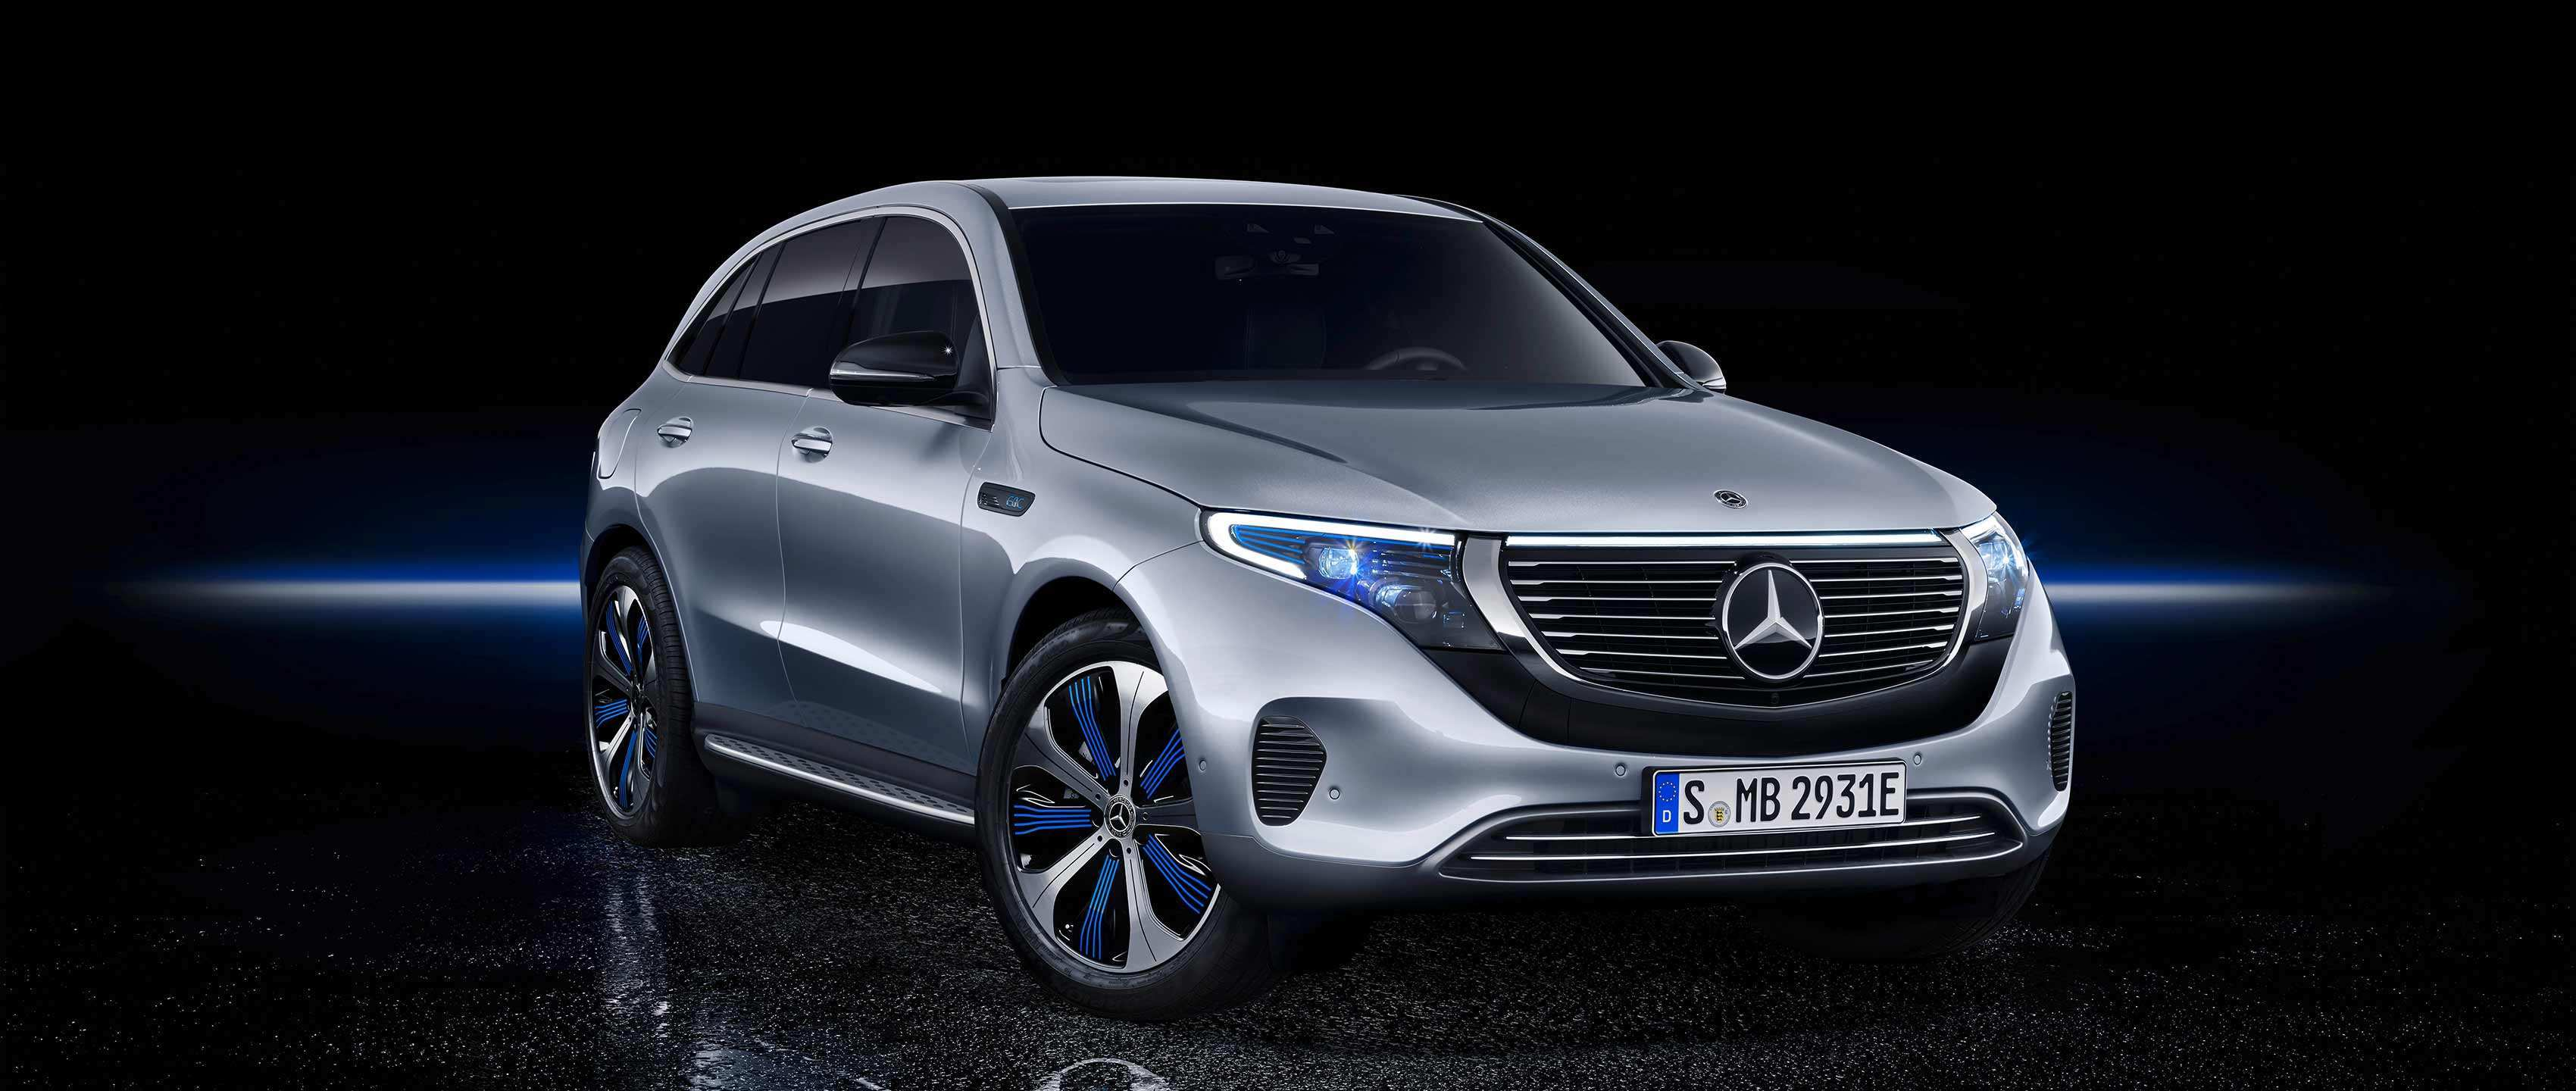 58 Gallery of Mercedes Benz Eqc 2019 Configurations with Mercedes Benz Eqc 2019